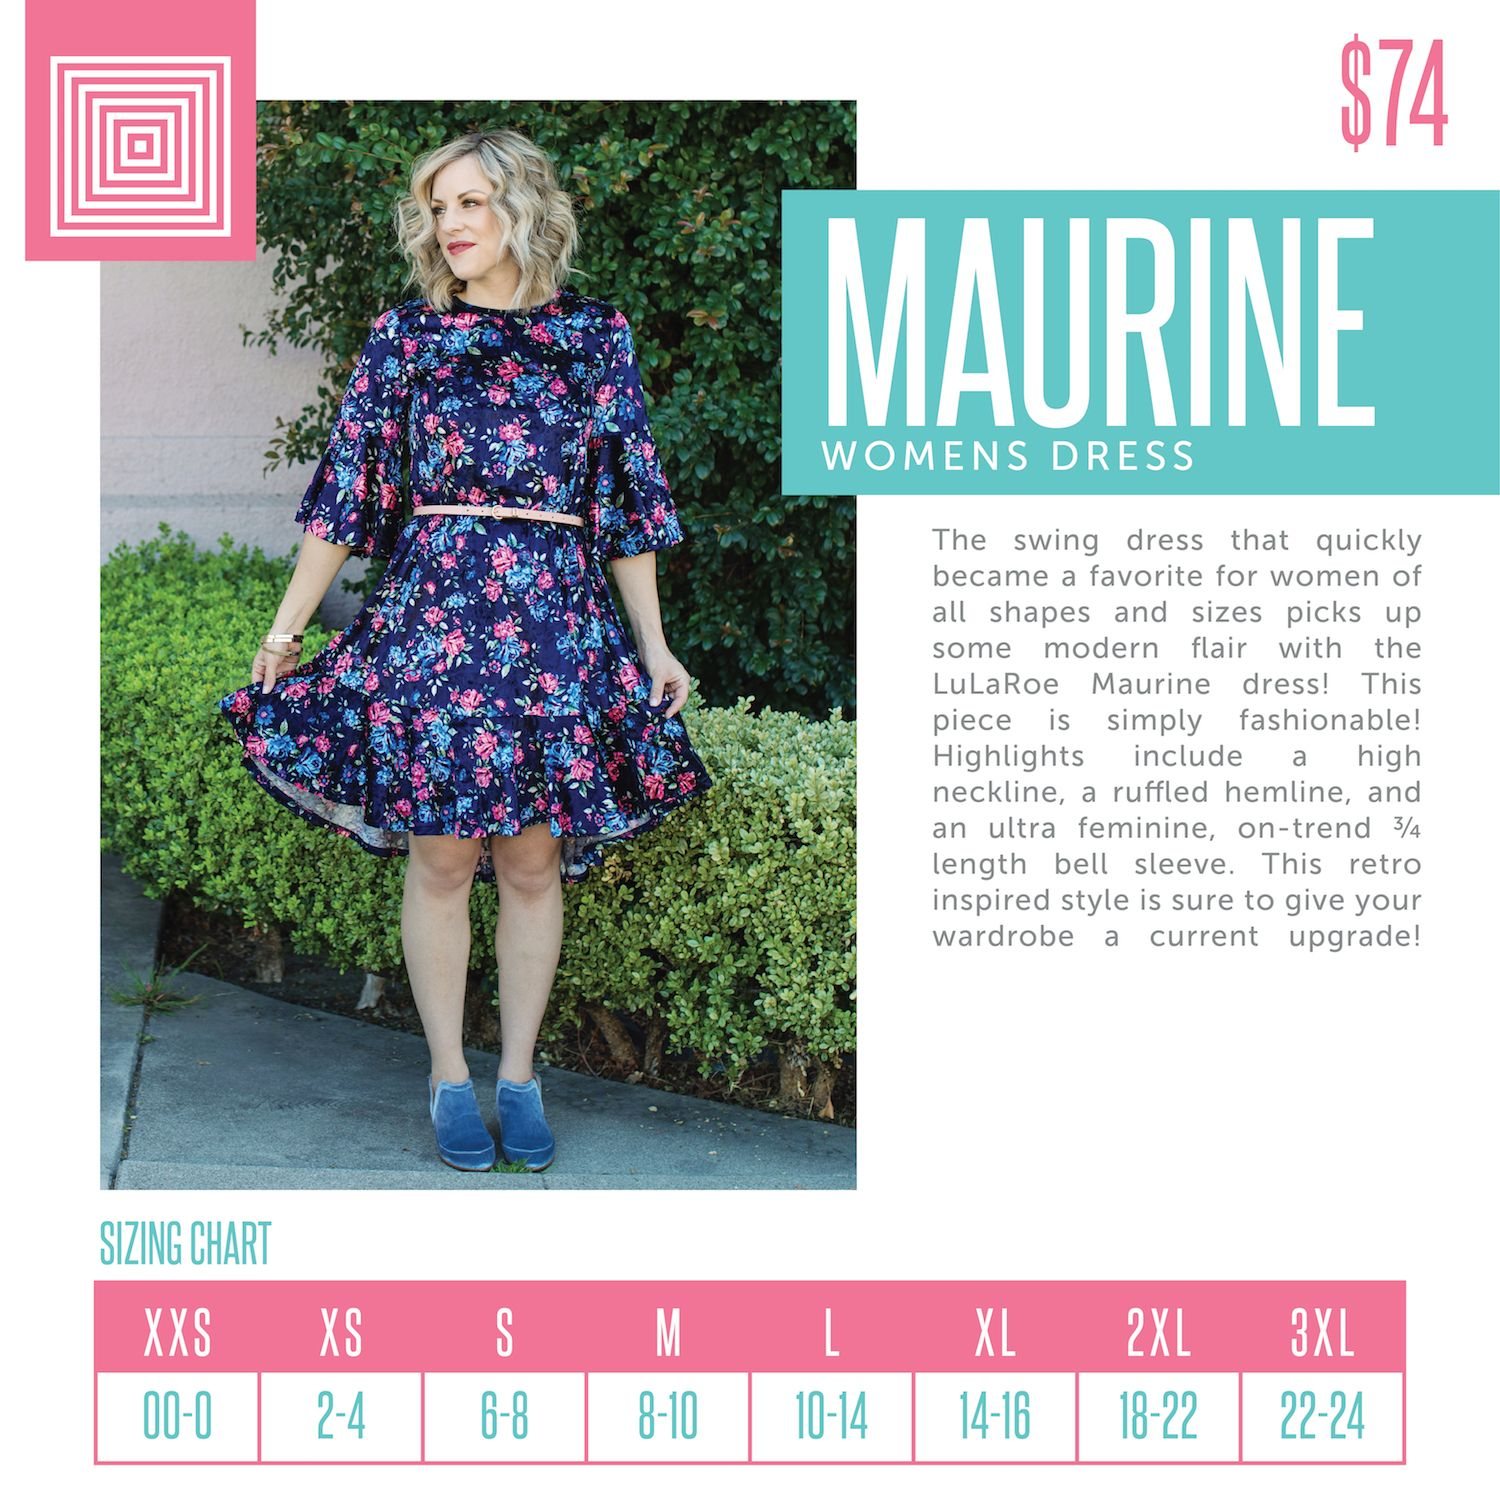 0f7179eea3bac LuLaRoe Maurine Dress Size Chart. See our current collection here -  www.facebook.com/groups/LuLaRoeGilbertGirls/